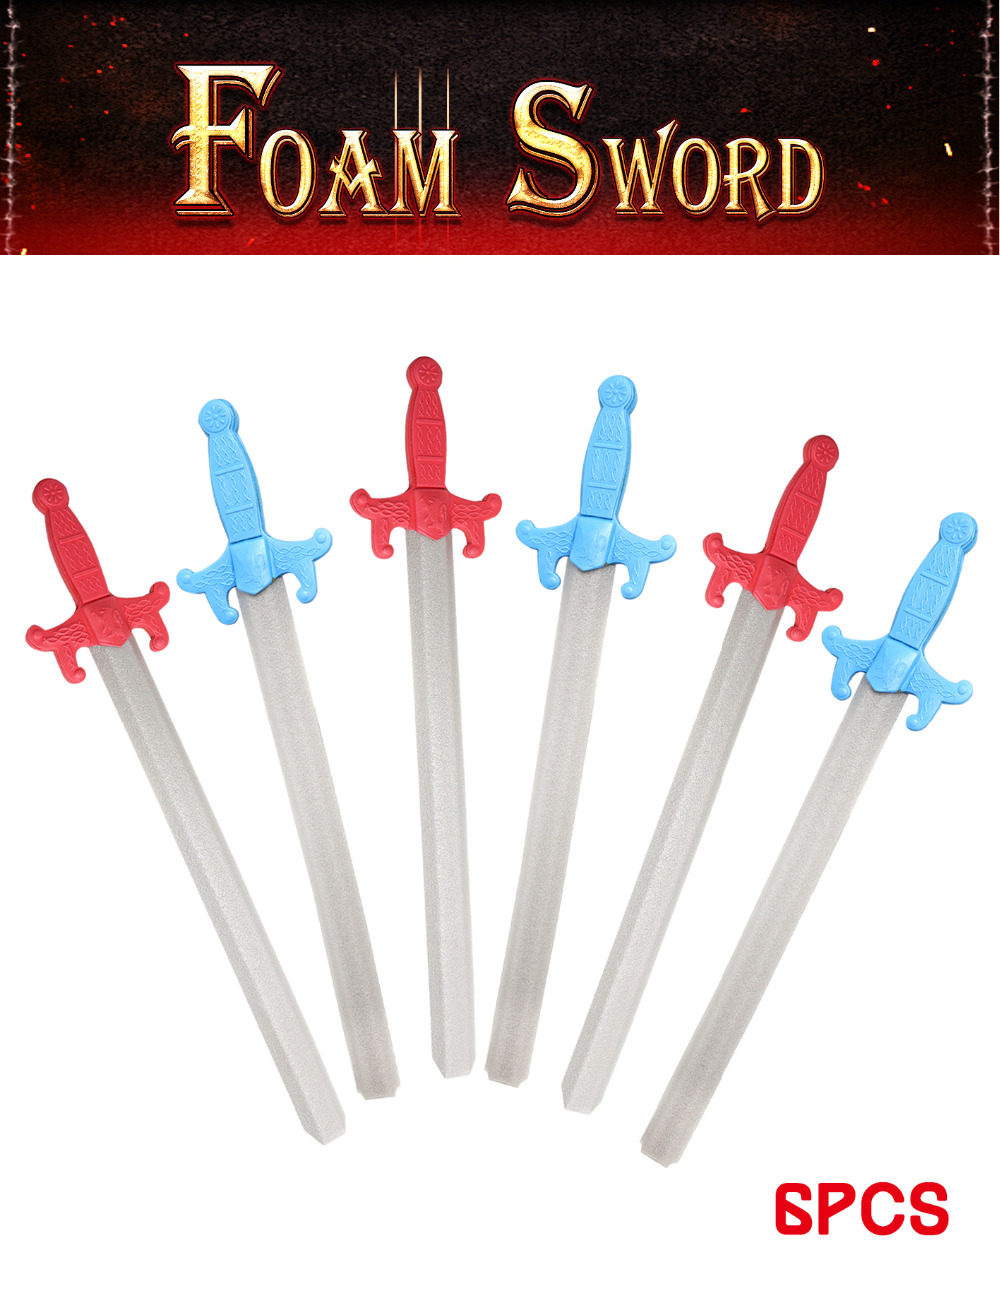 US $26 0 |Aliexpress com : Buy 6PCS Assorted EVA Foam Toy Swords Model  Playset Warrior Weapons Model Toy Pretend Play Outdoor Fun Sports Toys Set  for